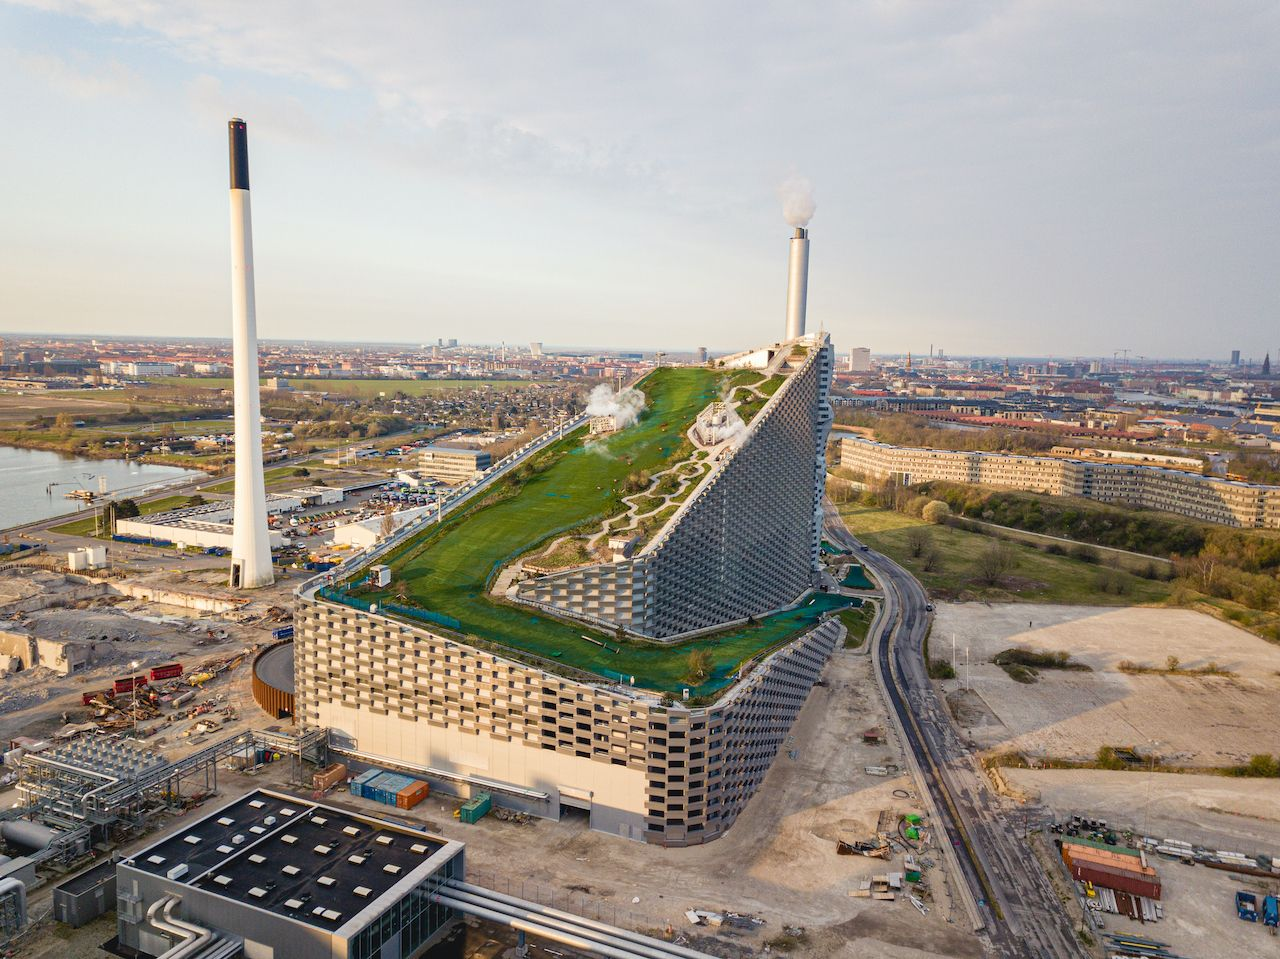 Copenhagen, Denmark - April 12, 2020: Aerial drone view of Amager Bakke, a waste to power plant with a ski slope on top., Denmark architecture